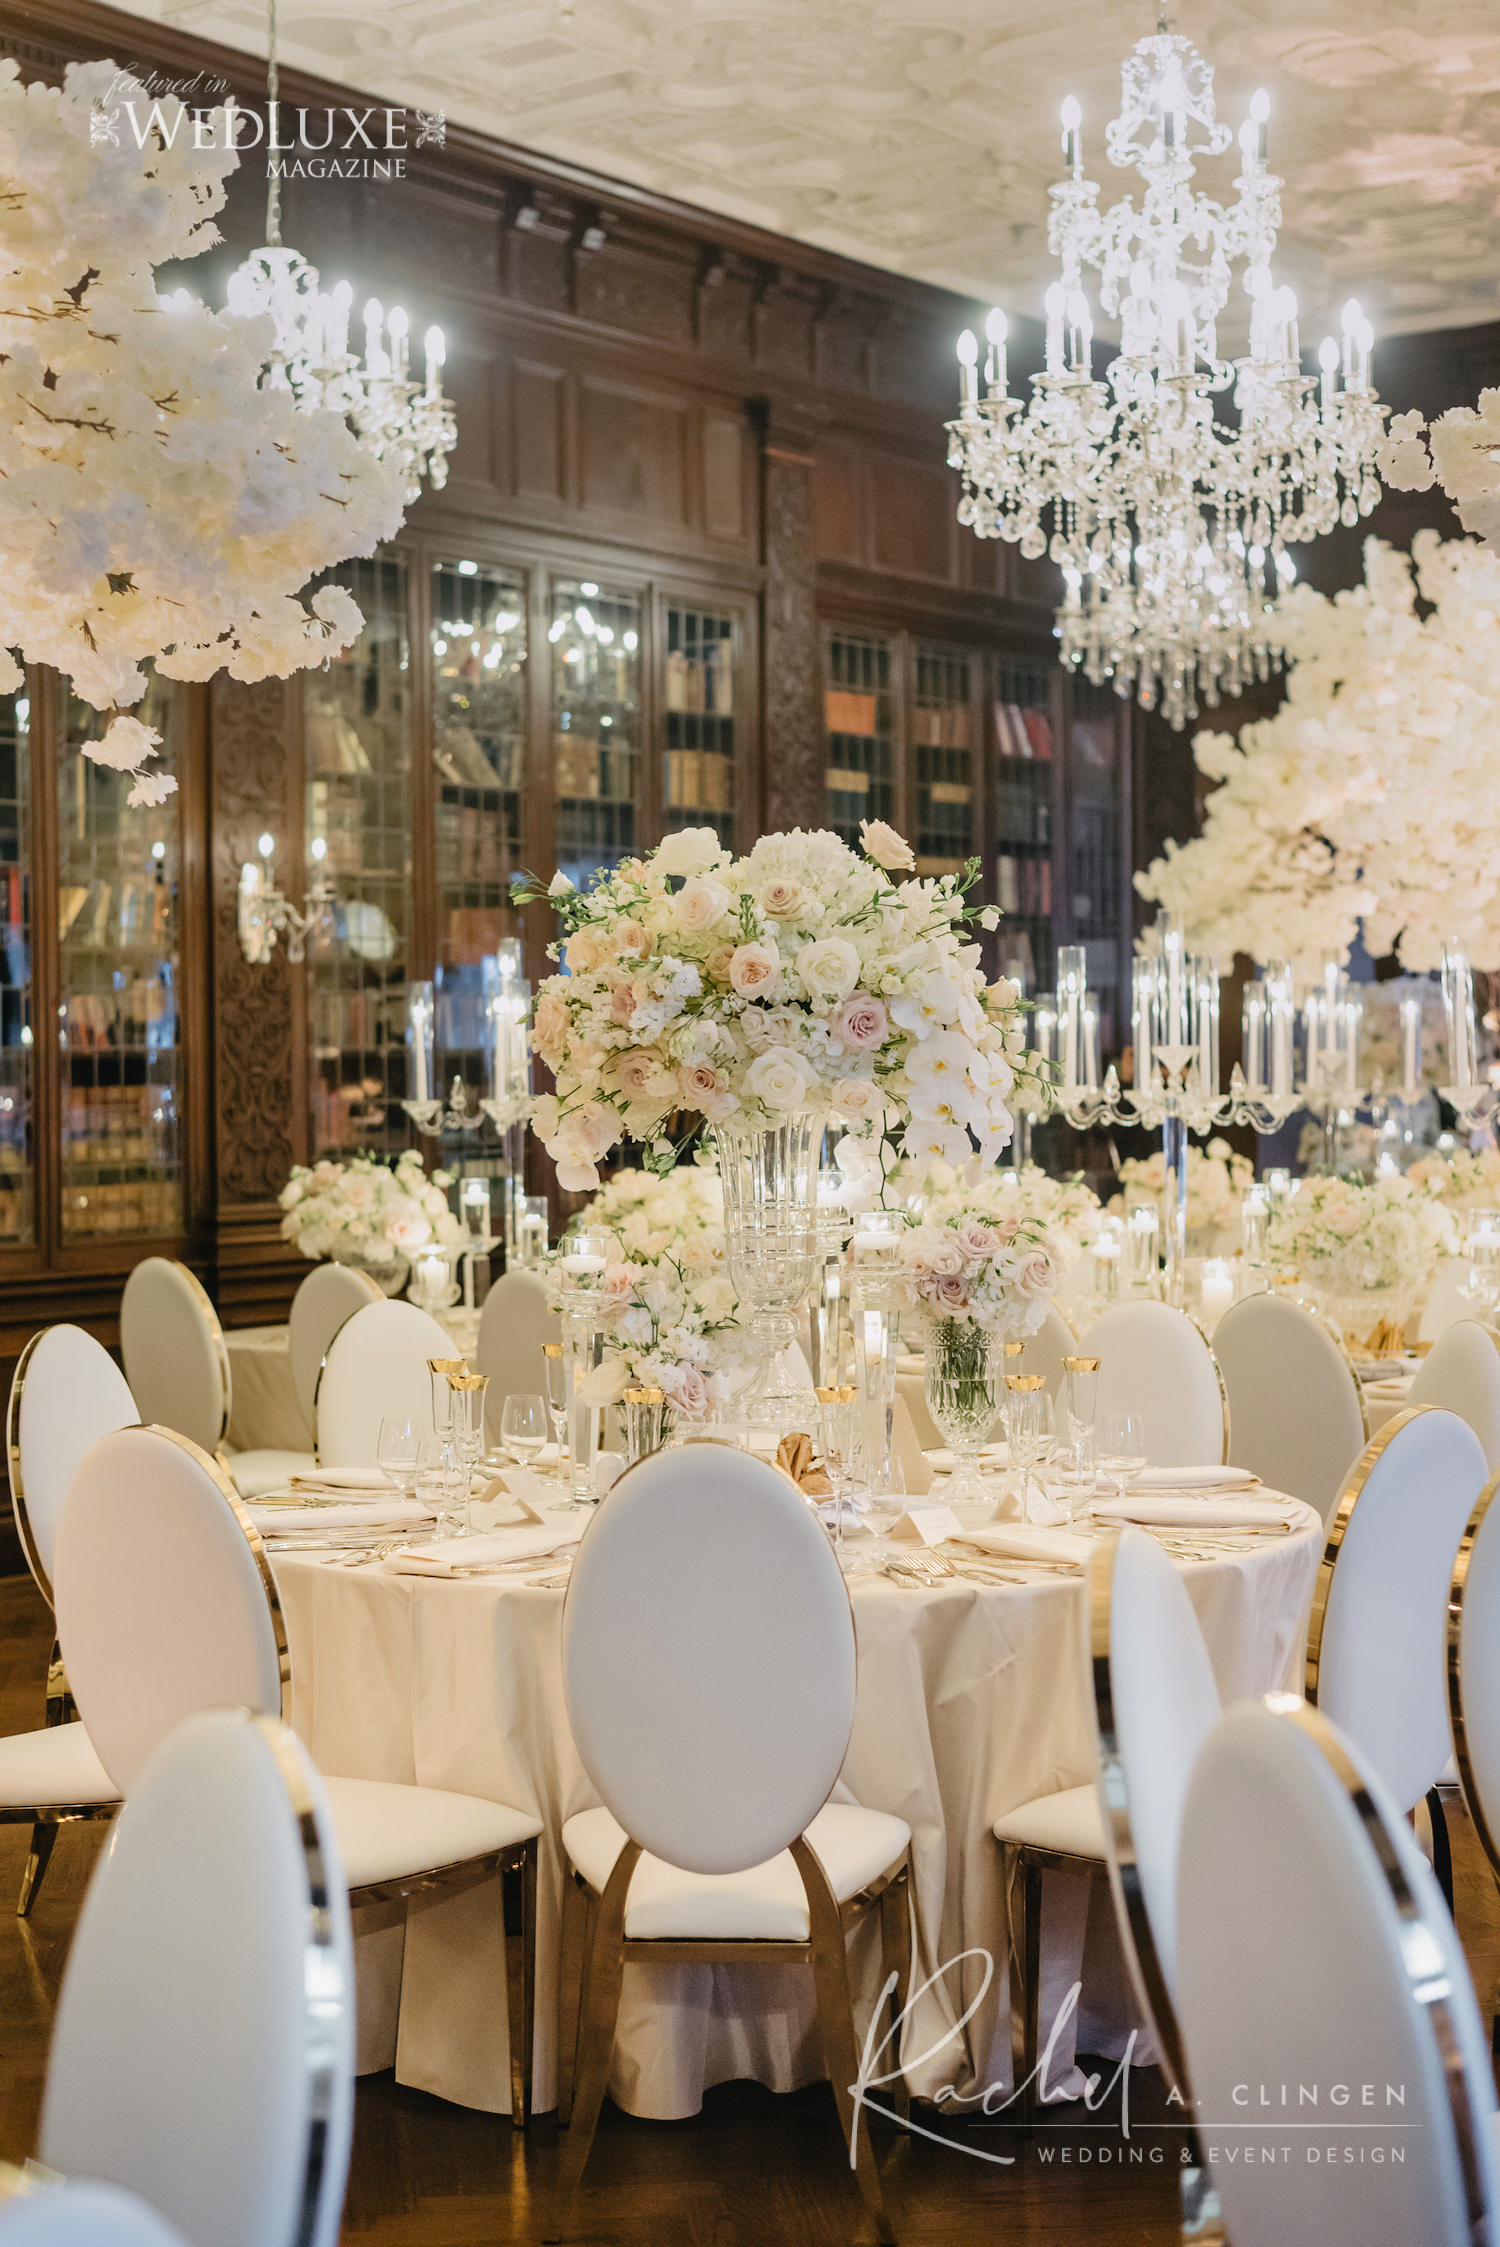 luxury wedding flowers toronto rachel clingen